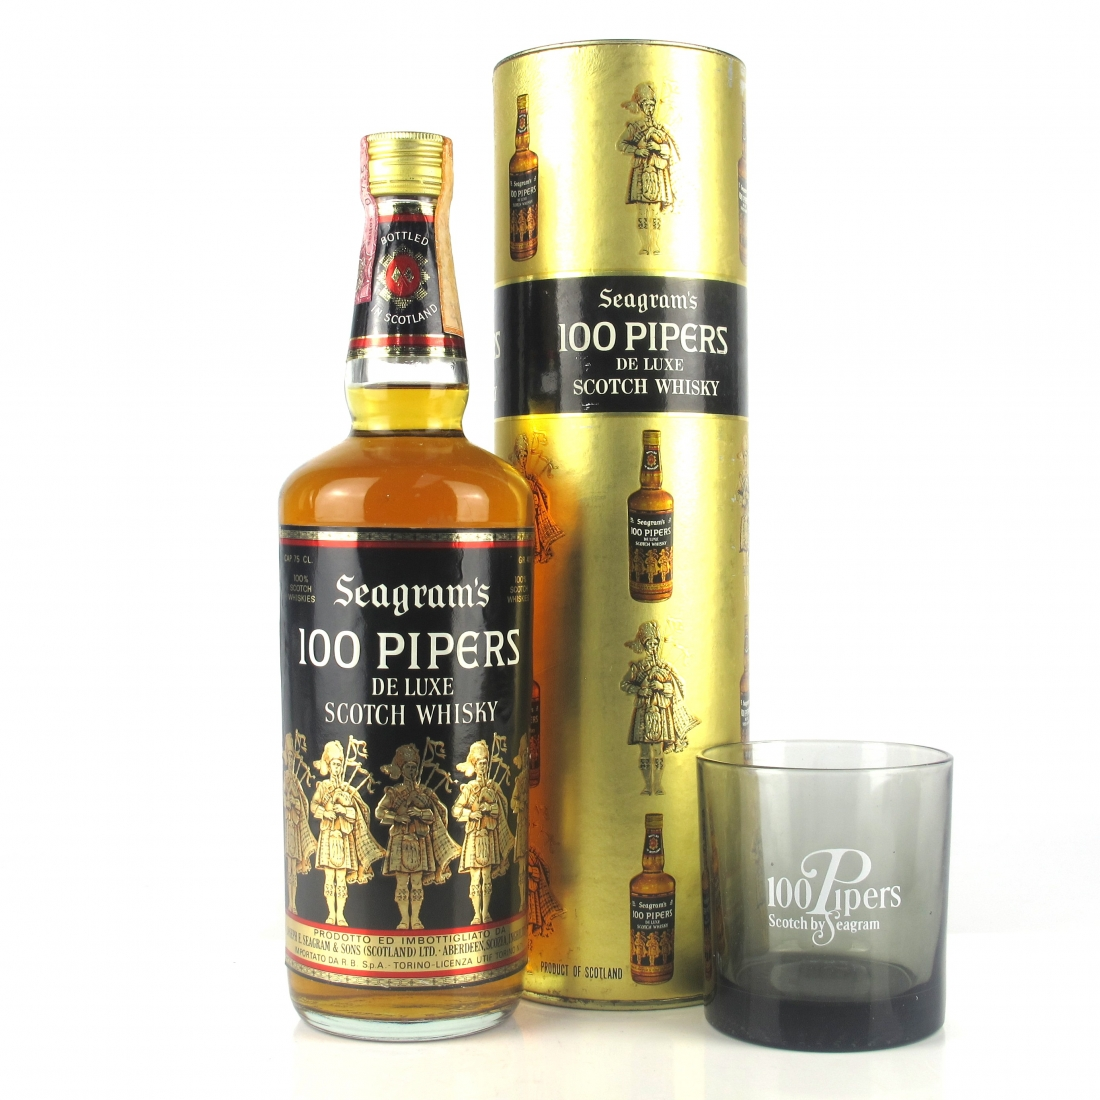 100 Pipers 1970s / includes Glass